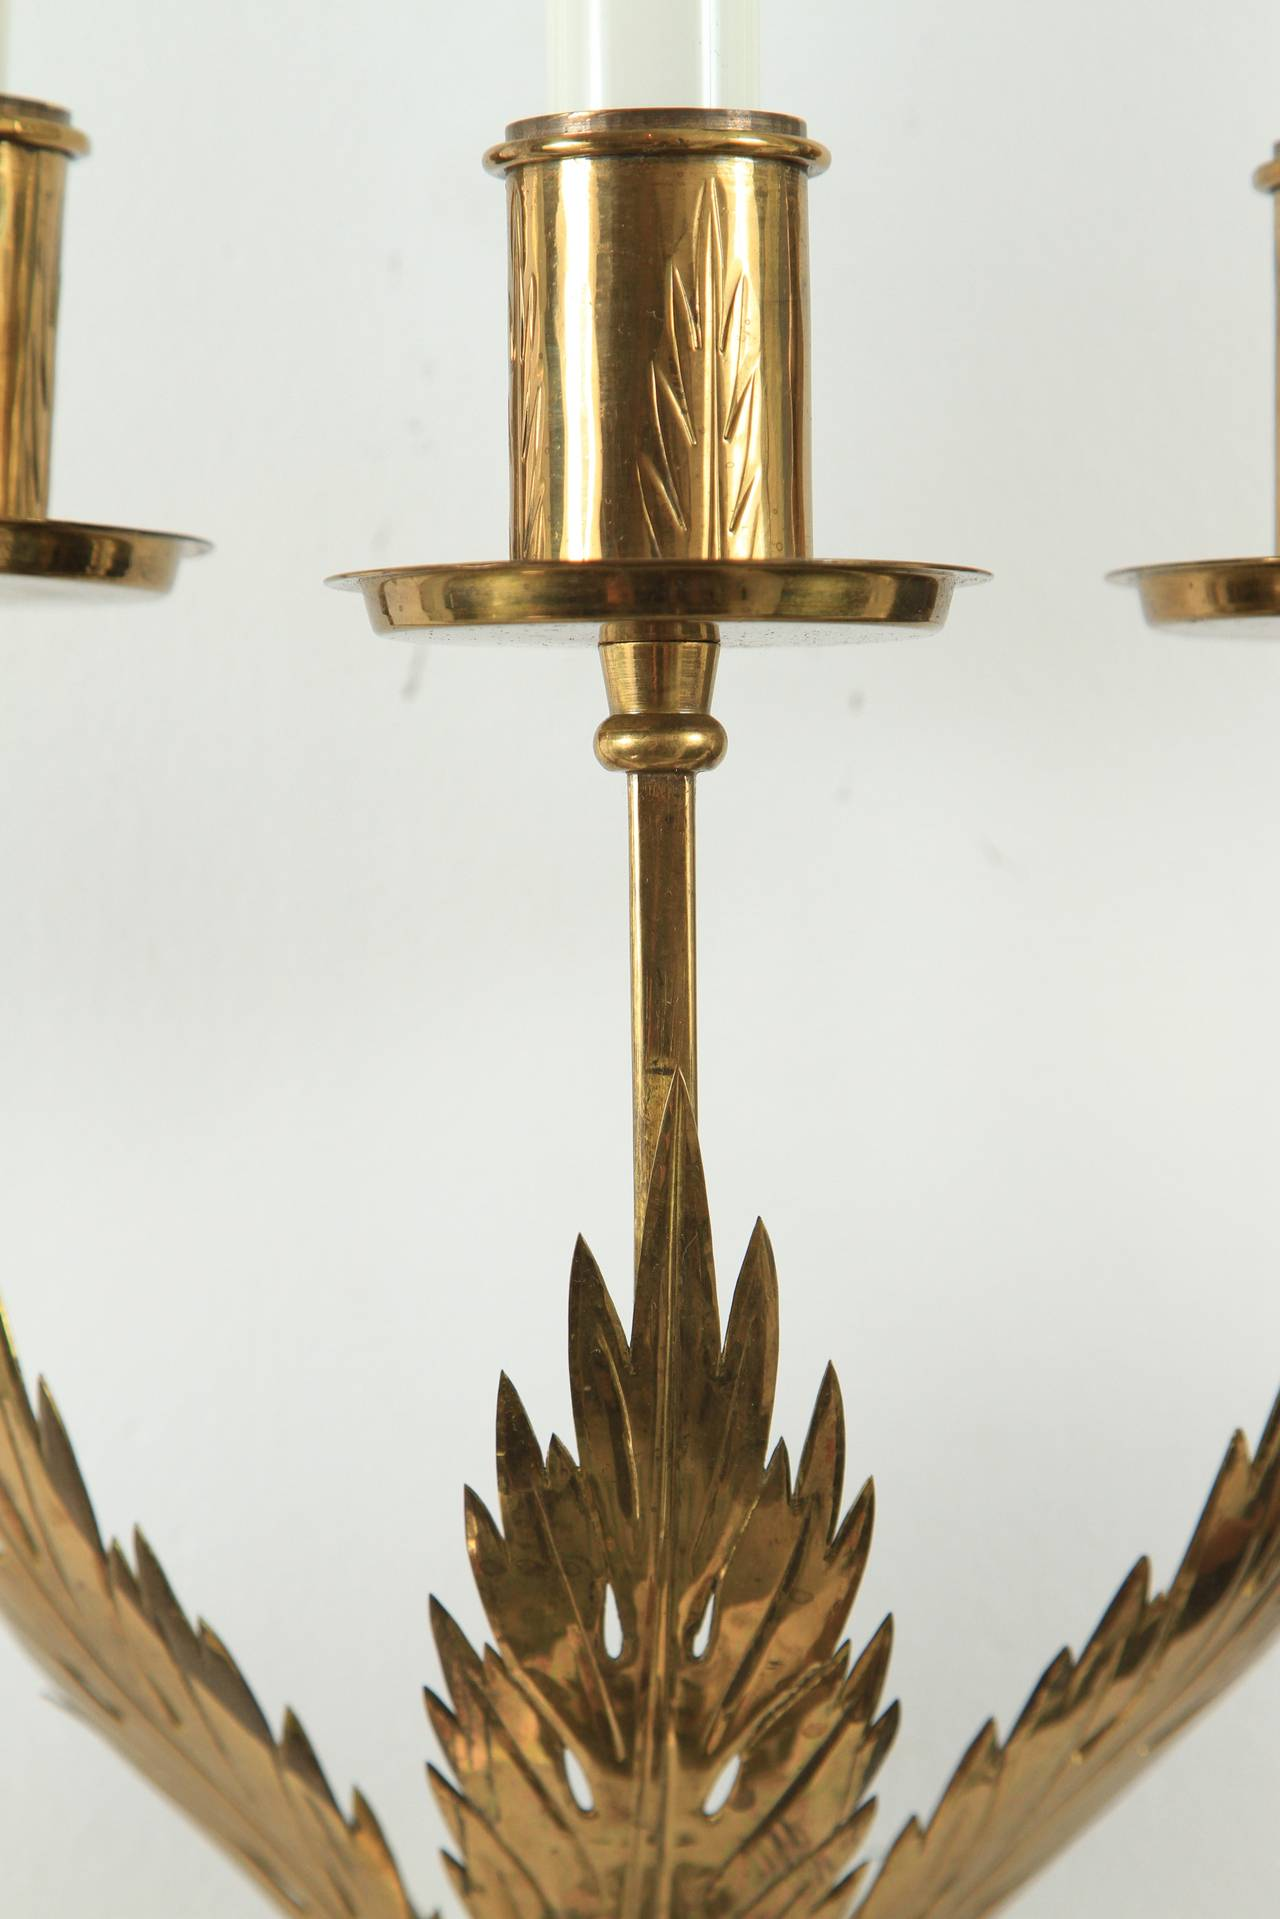 Trio of Custom Acanthus Leaf Sconces by Tommi Parzinger In Excellent Condition For Sale In Palm Desert, CA